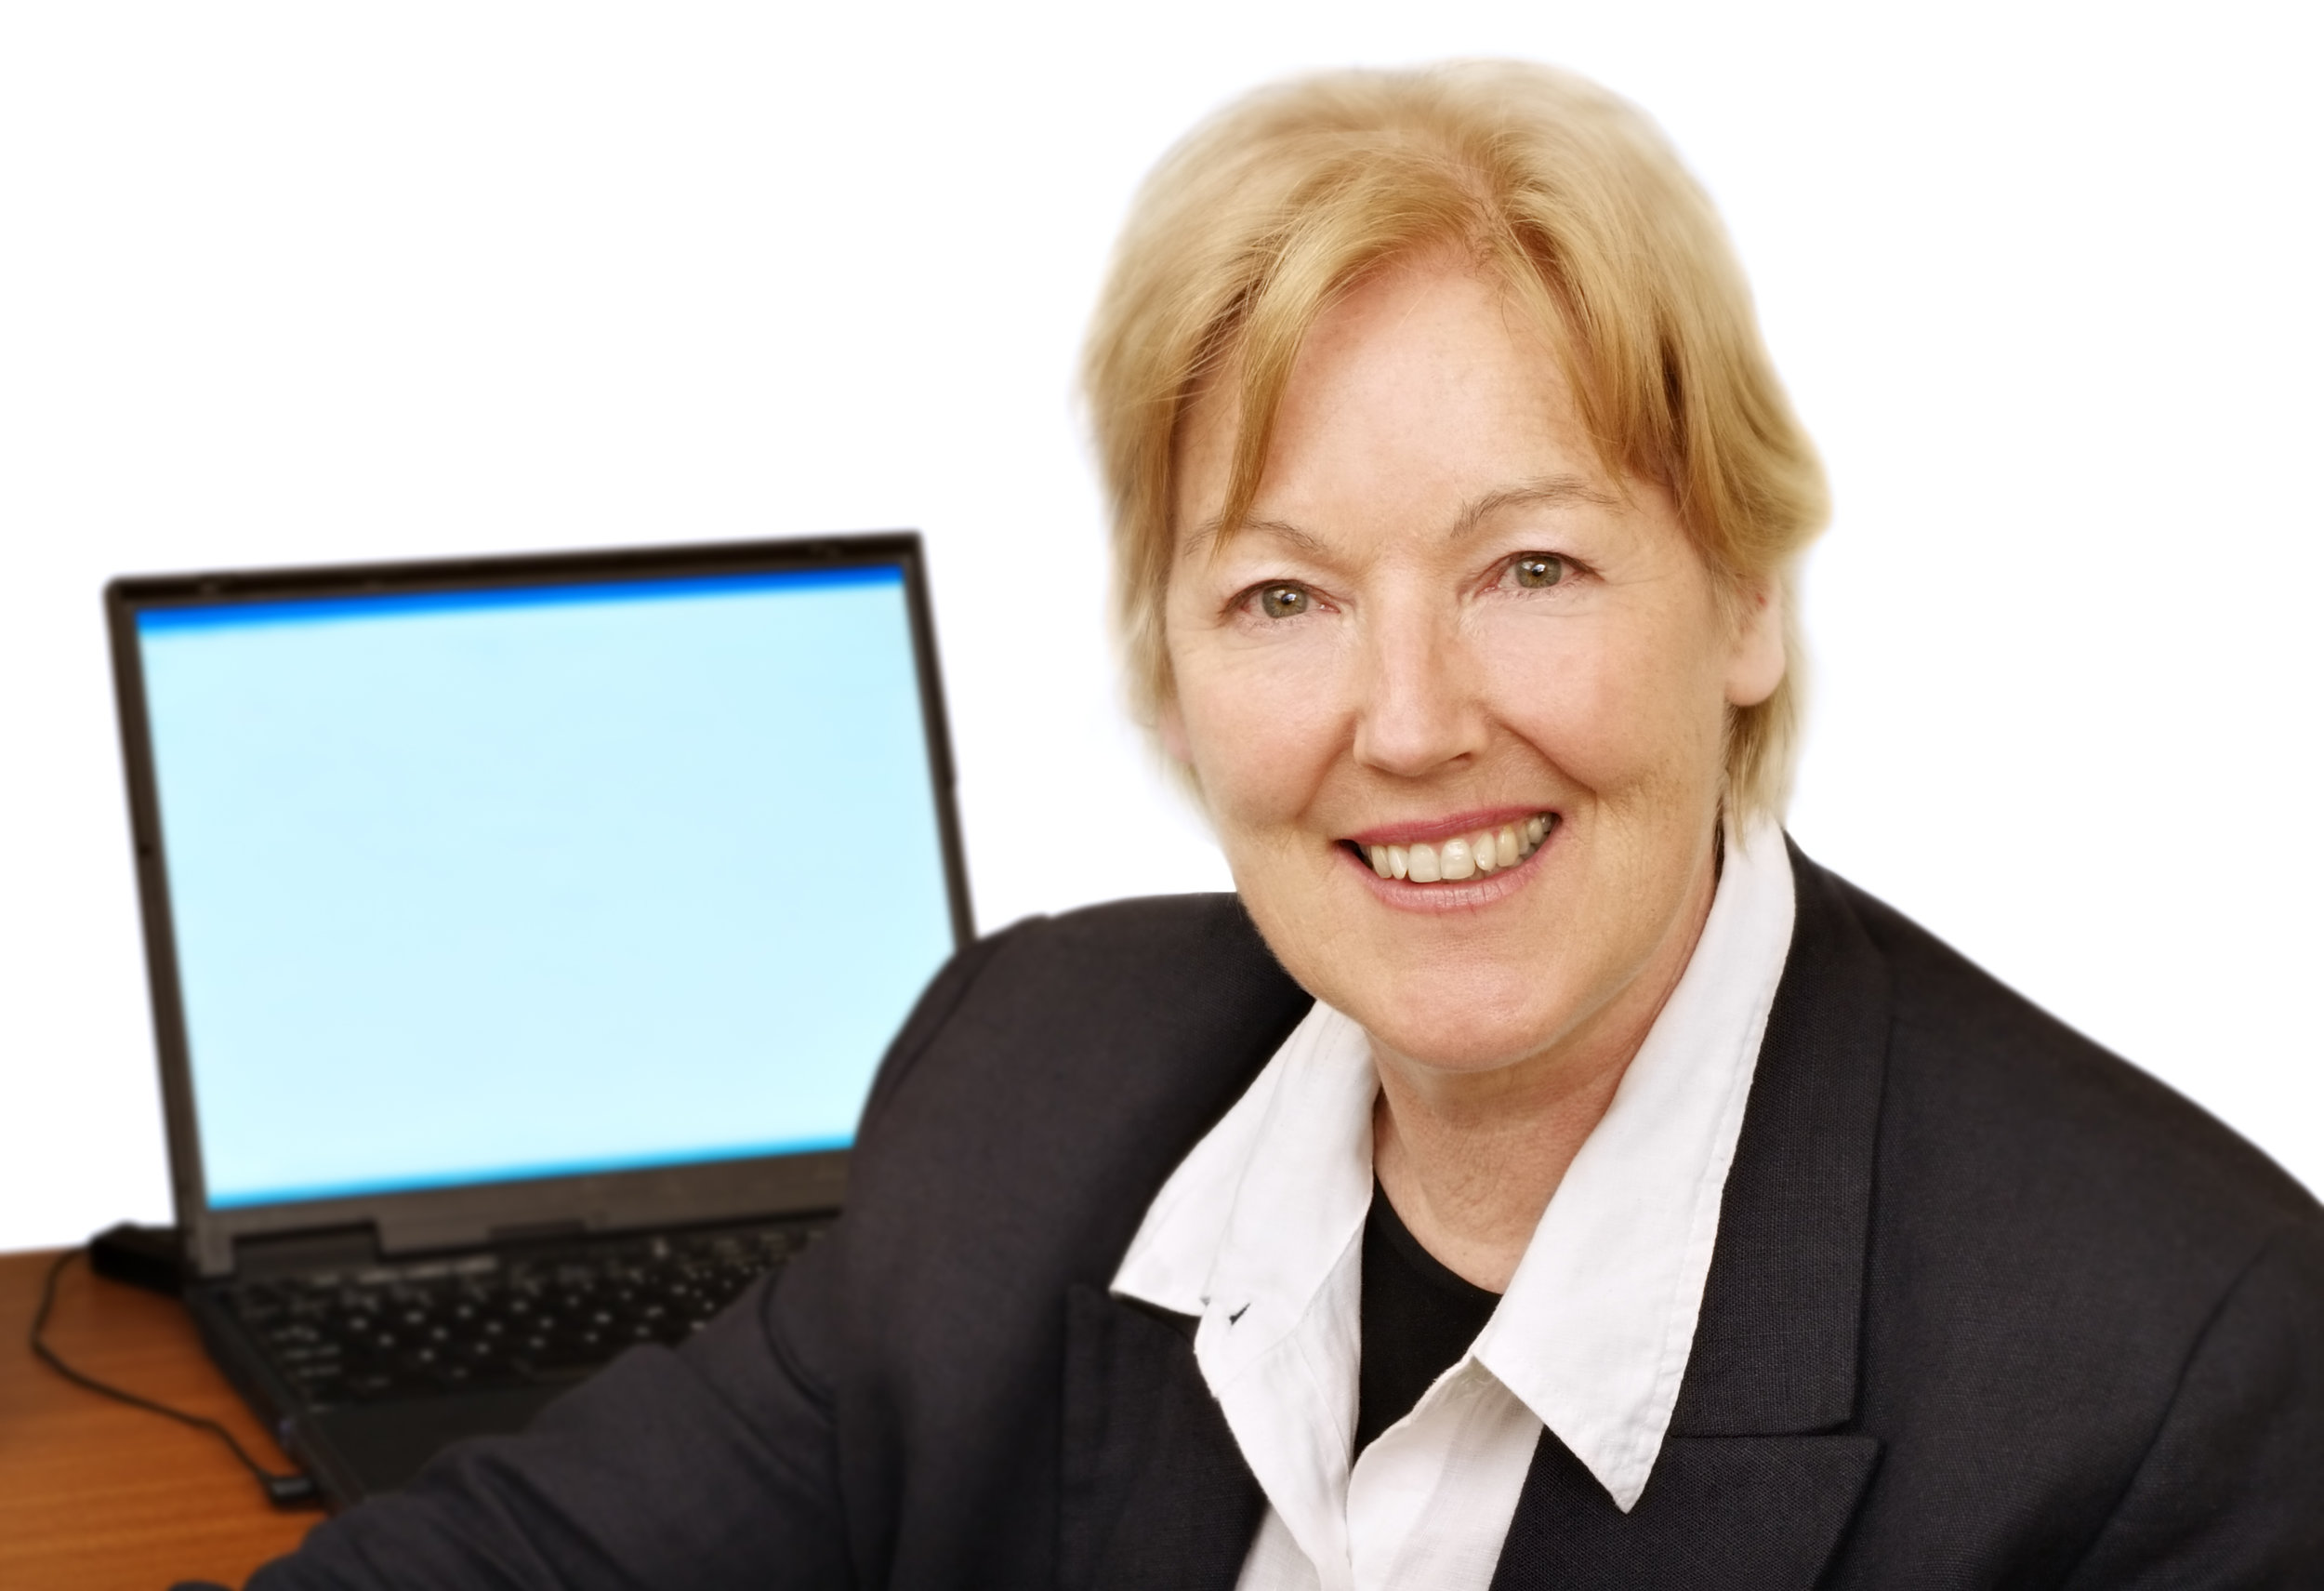 Case: Compelling Assessments - Sharon, chief executive of a professional services firm, contacted us for help with her rapidly growing company. She conducts intake assessments with each new client, but lacked time to analyze and document her findings. We analyzed the assessment data and documented key findings utilizing her firm's template.